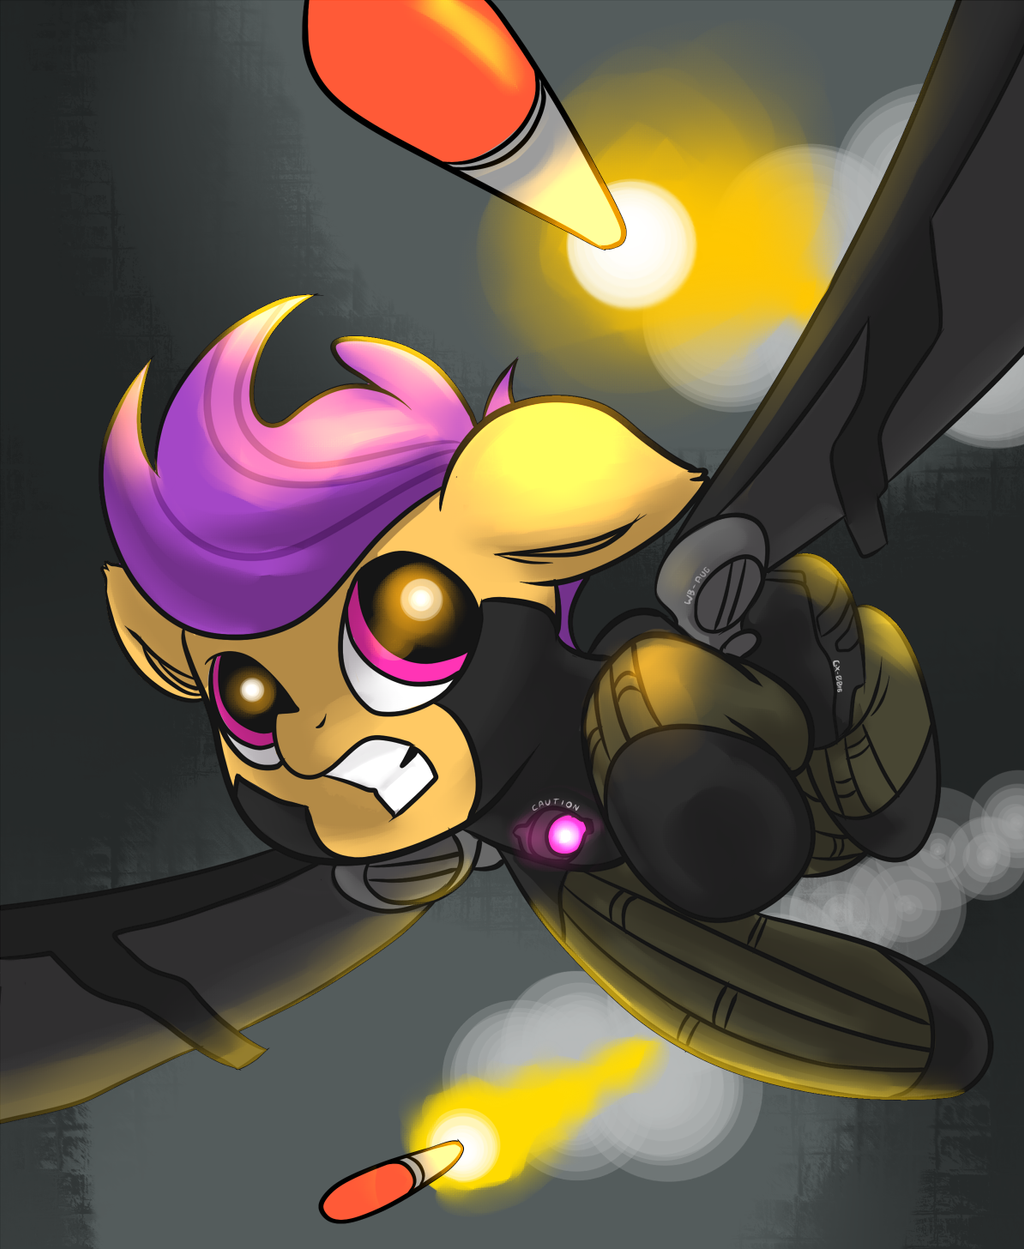 Fly fast, Scoots! by Weisdrachen